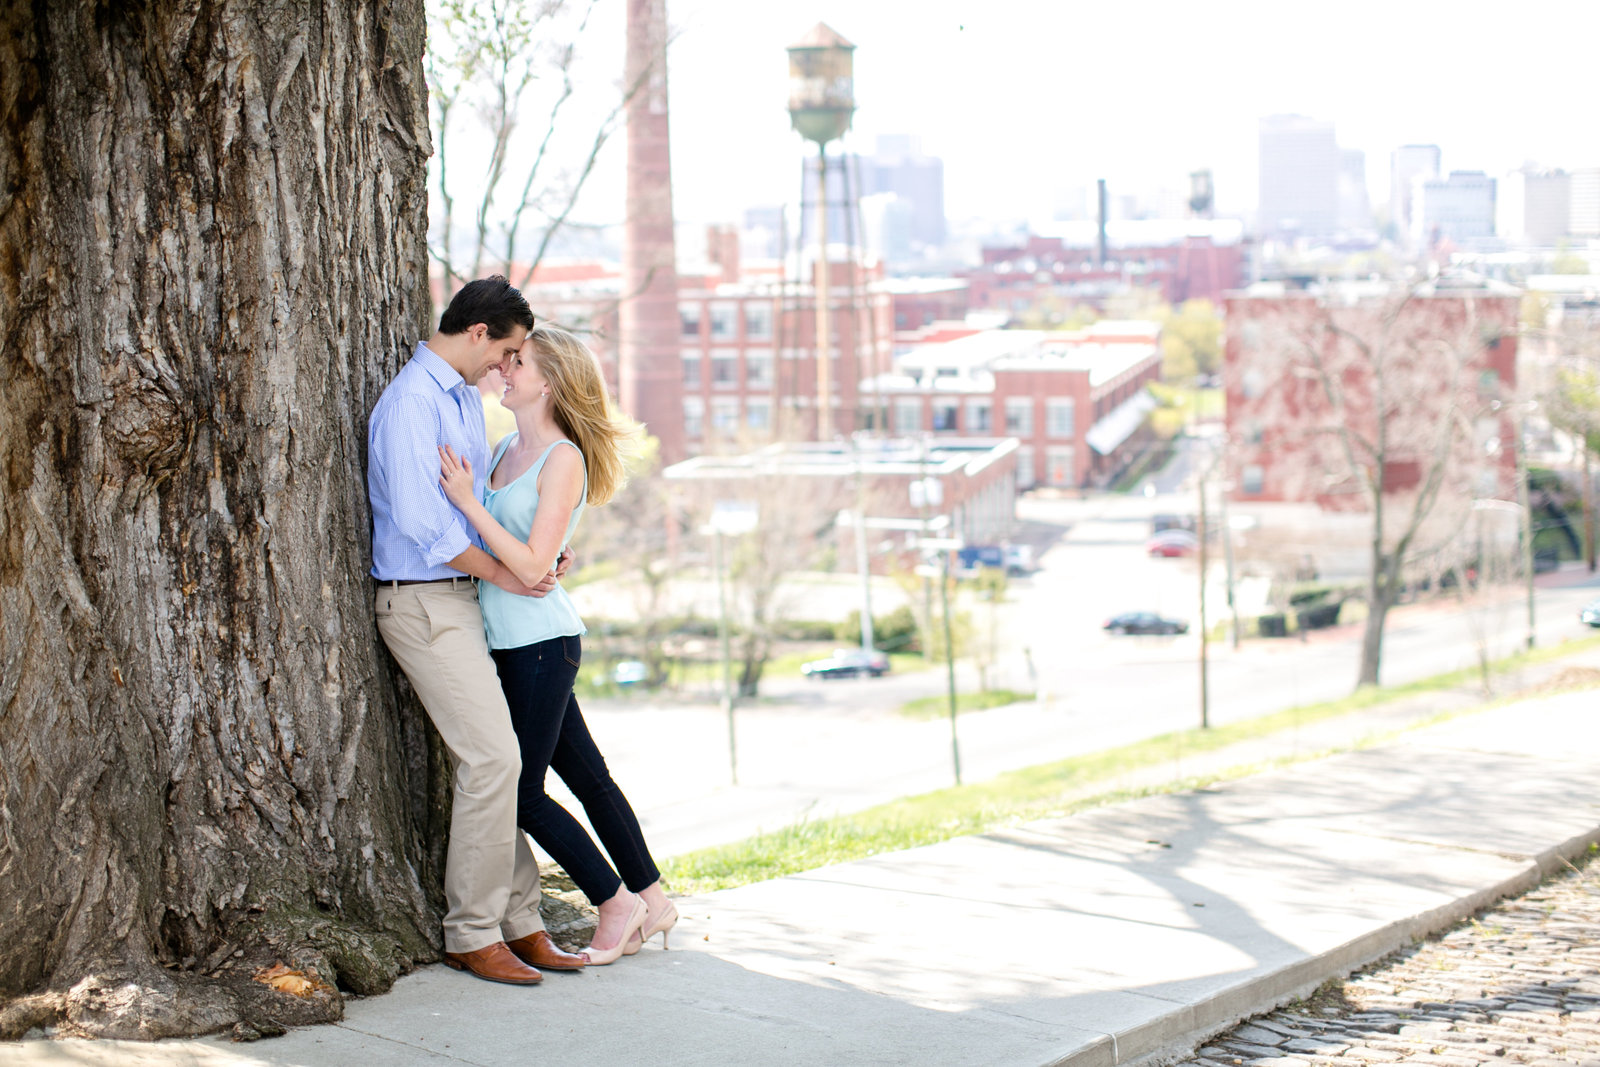 Carley Rehberg Photography - Engagement Photographer - Photo - 2